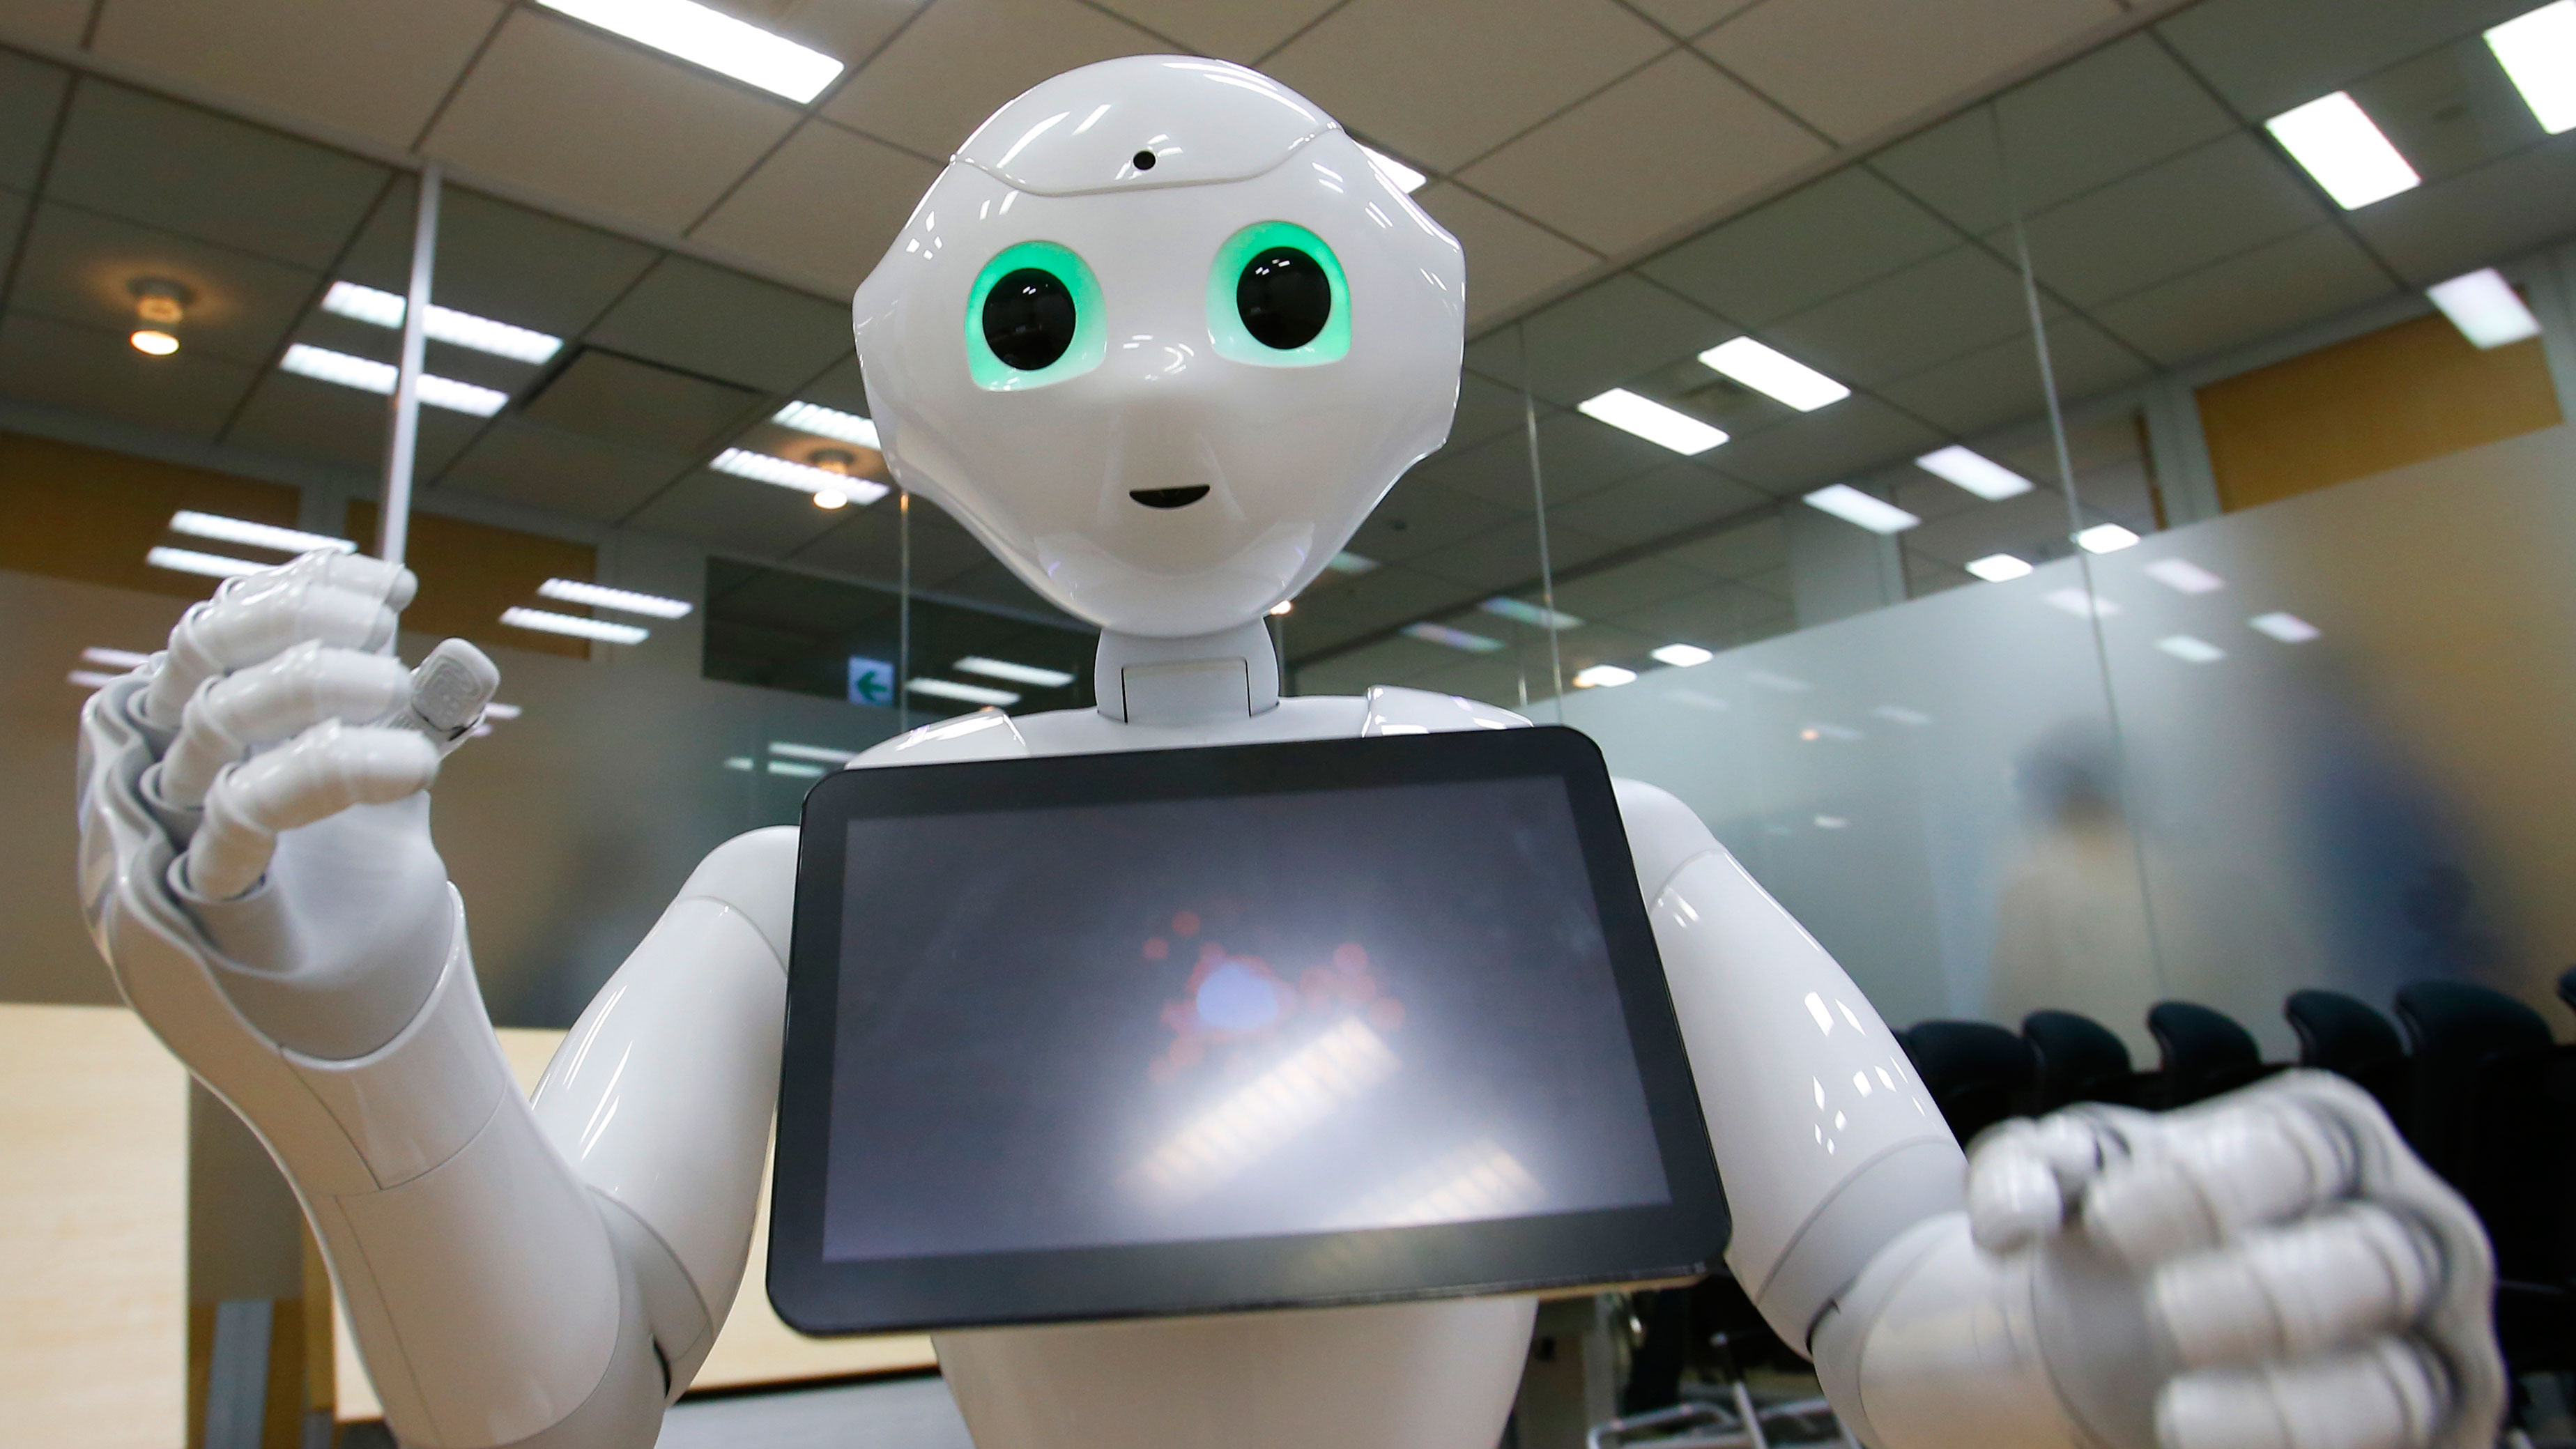 In this photo taken Thursday, July 9, 2015, SoftBank Corp.'s new companion robot Pepper performs during an interview at the technology company's headquarters in Tokyo. Pepper, the 121-centimeter (four-foot) tall white machine-on-wheels, offers ardent attention, cool dance moves, and small talk. Pepper has cameras, lasers and infrared in its hairless head so it can detect human faces. (AP Photo/Shizuo Kambayashi)